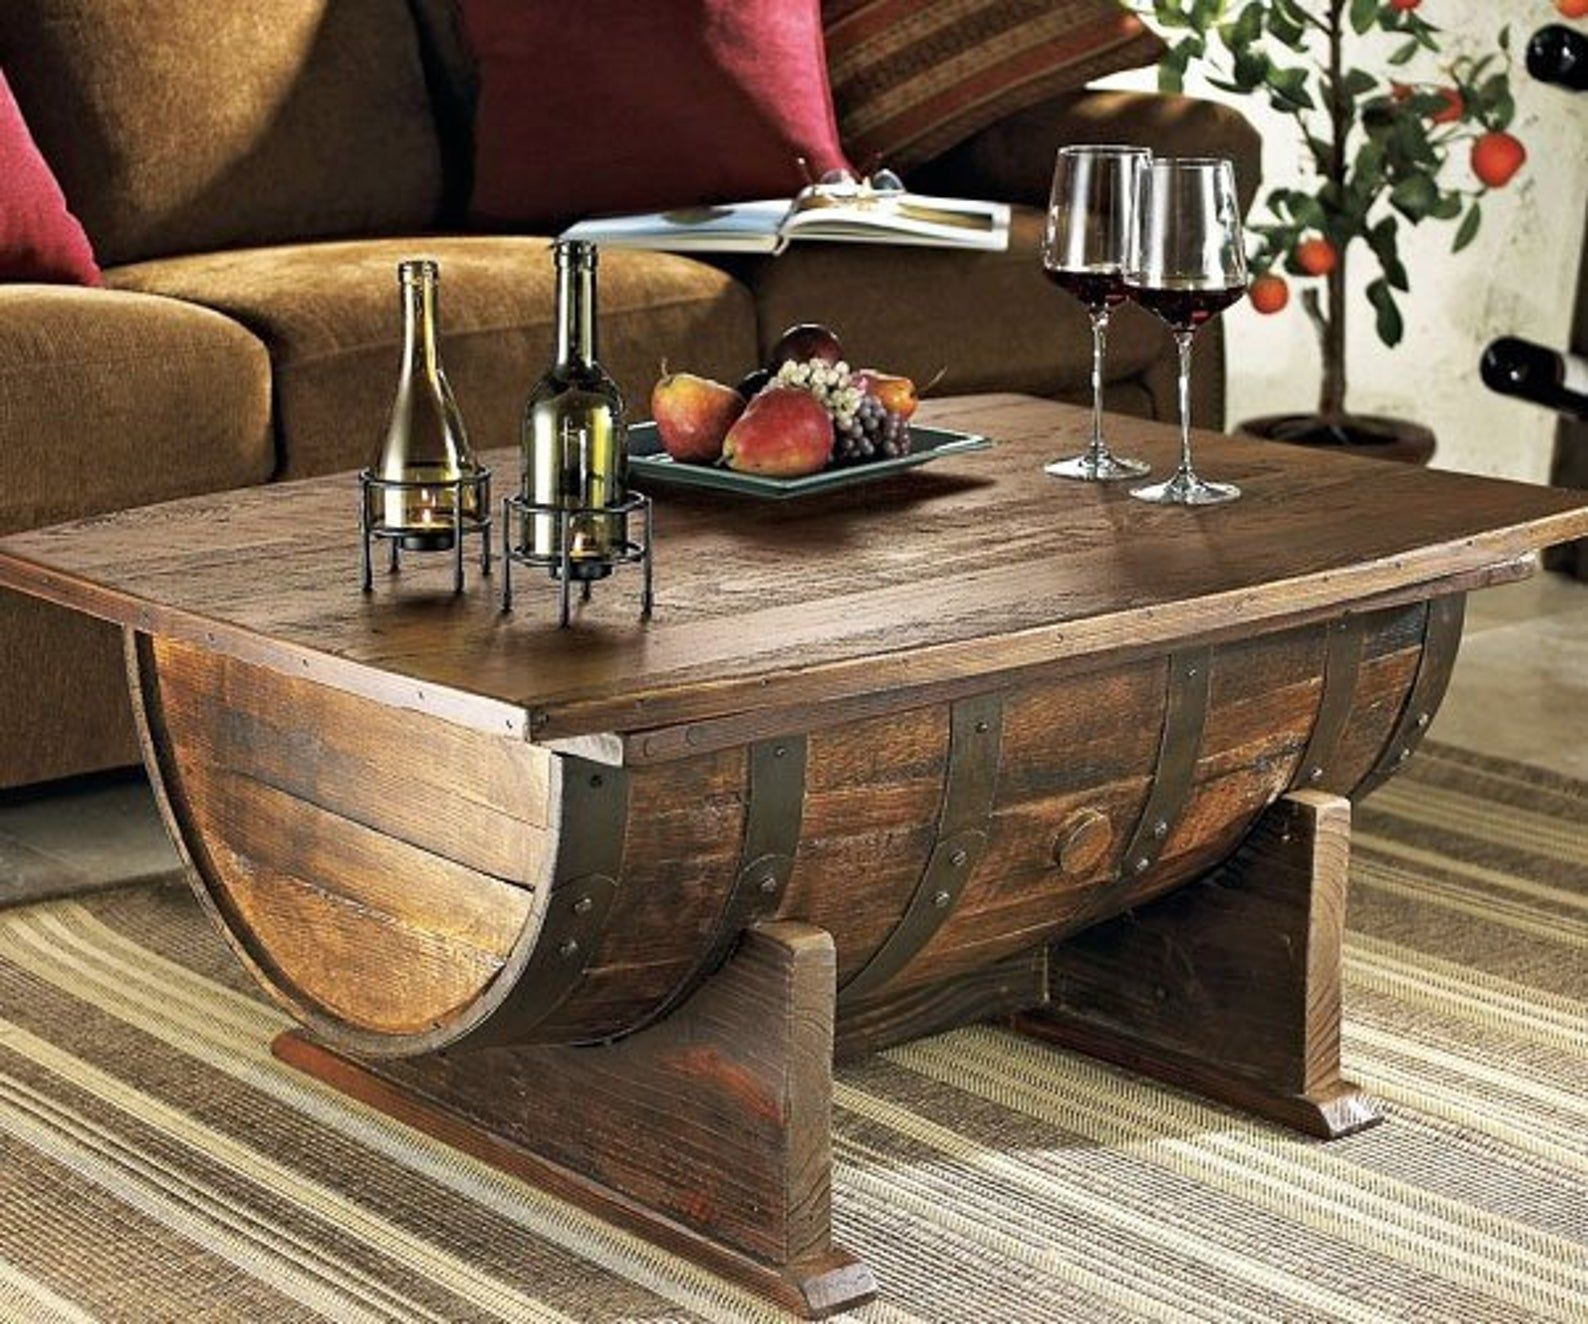 How to Make a Coffee Table -- Step-by-Step DIY Guide -- Or an extra barrel